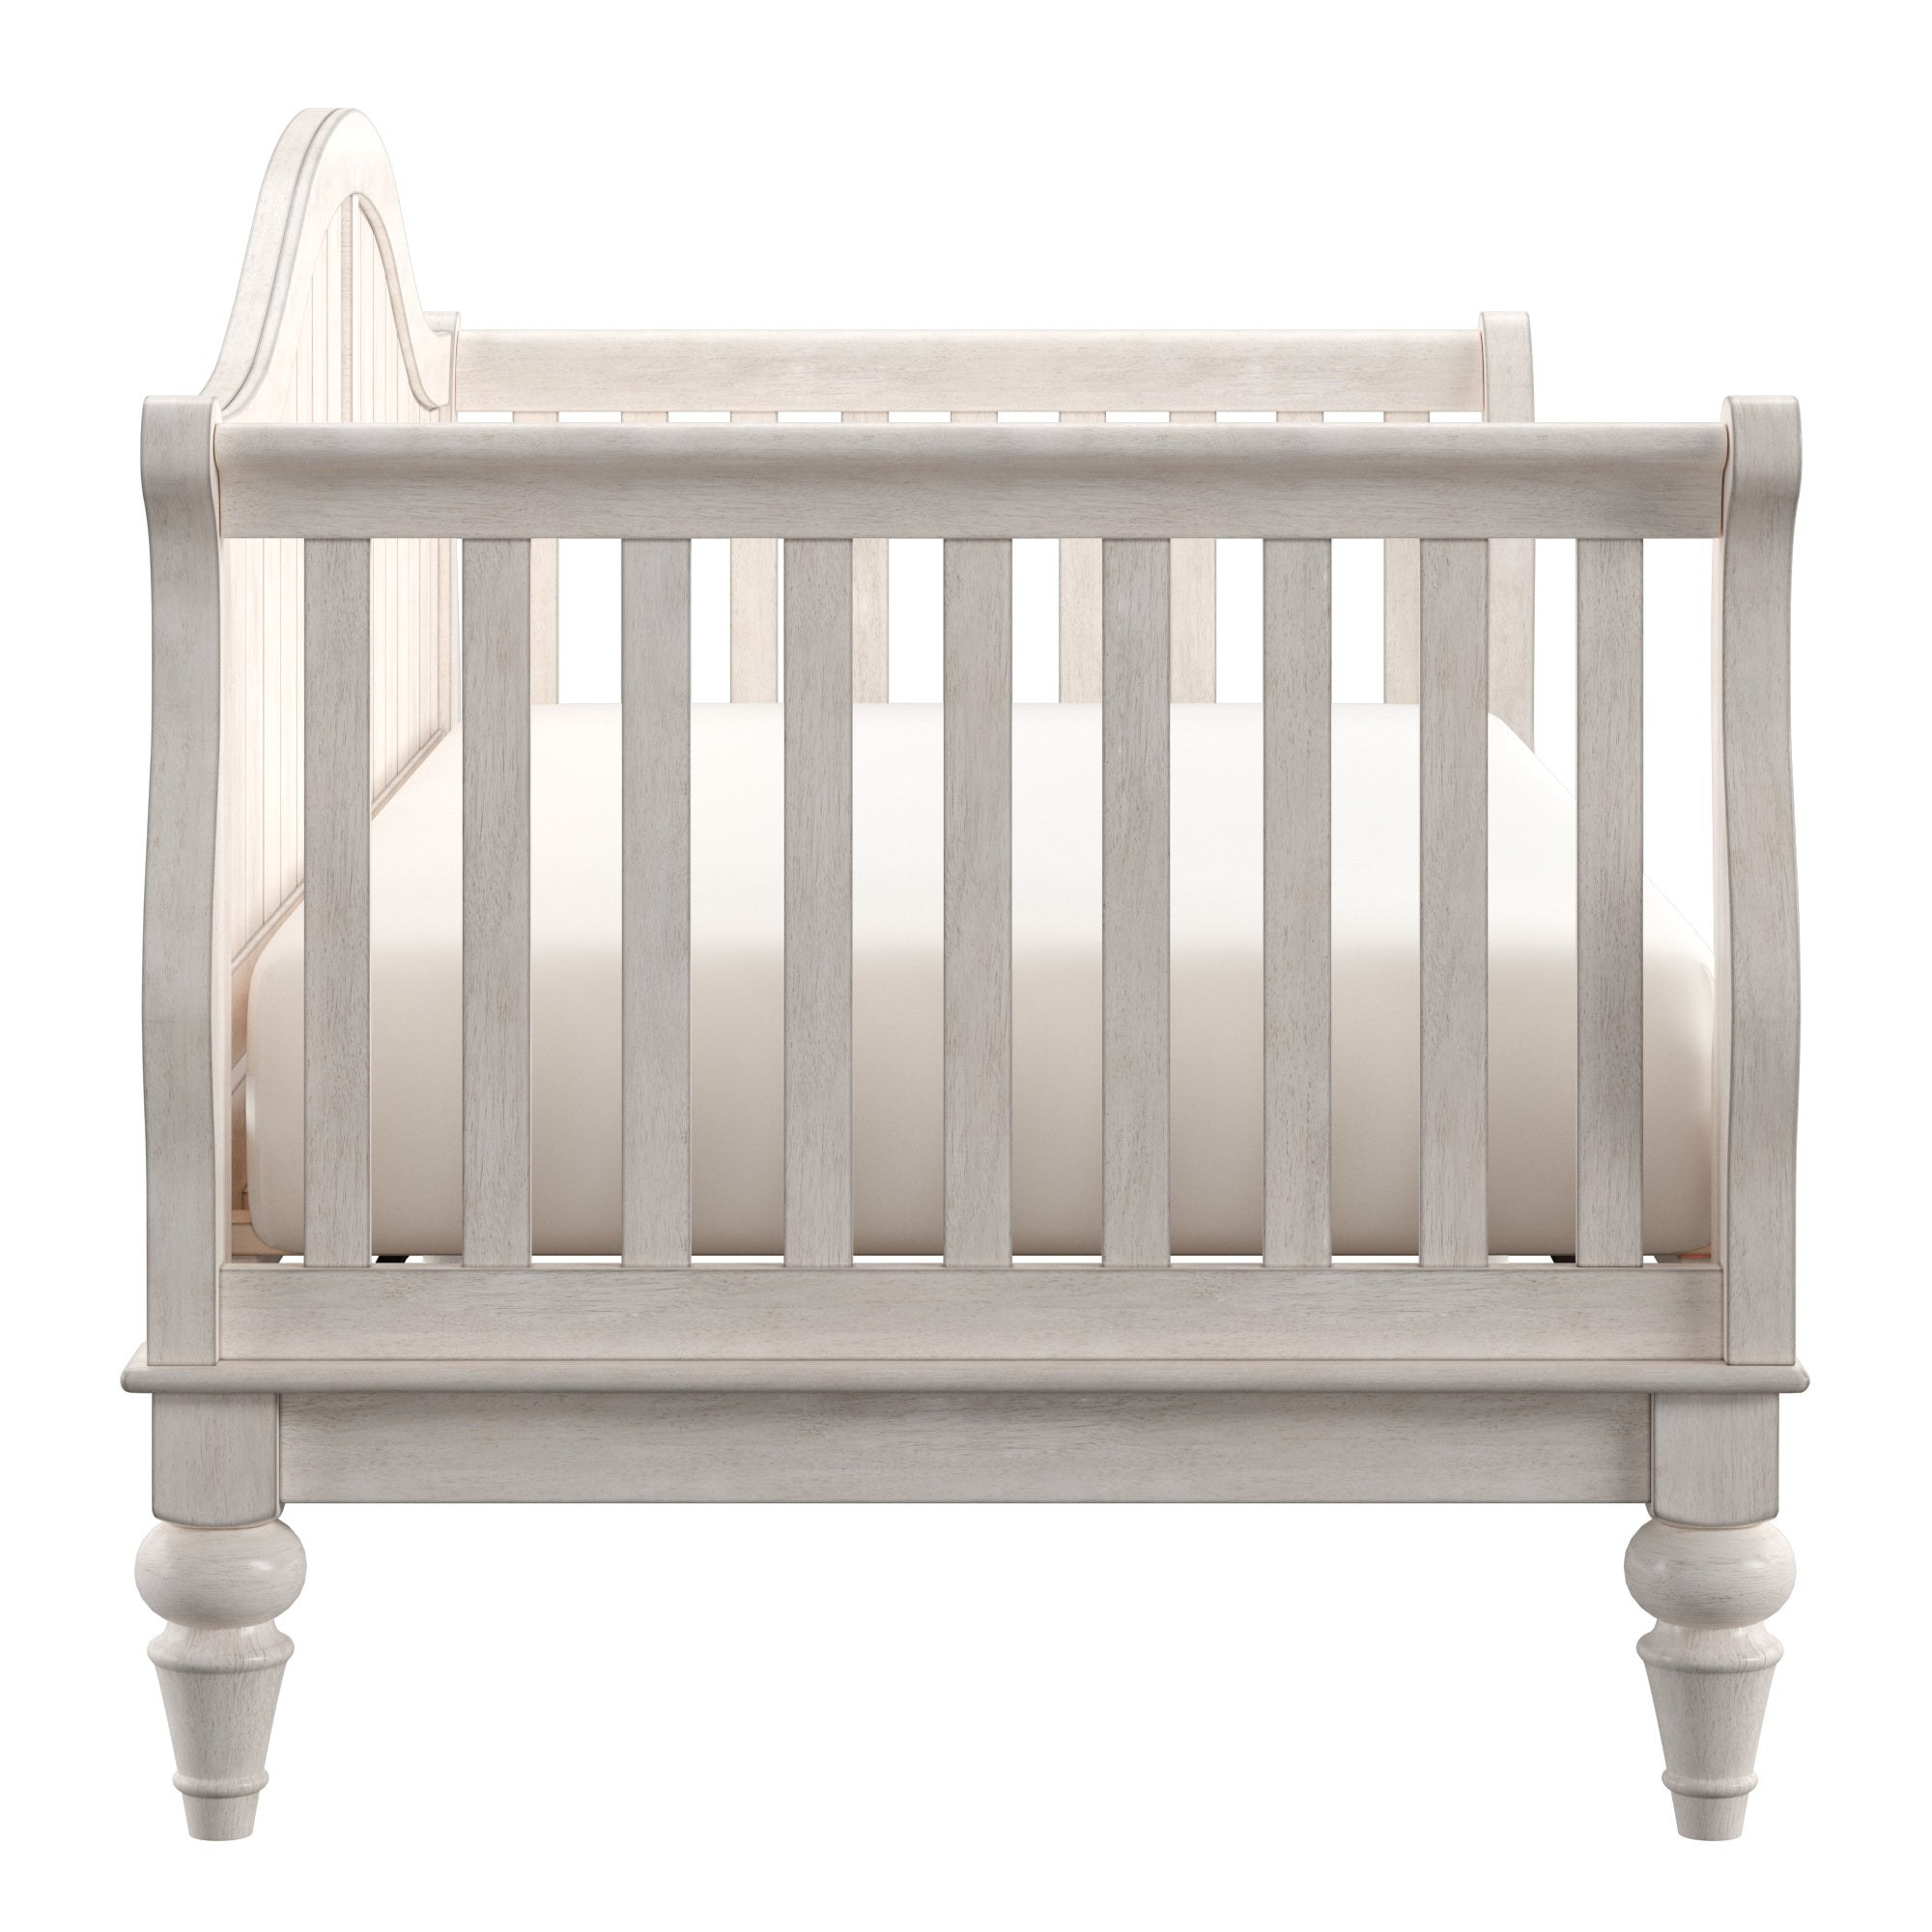 Traditional Wood Slat Daybed - Antique White, No Trundle